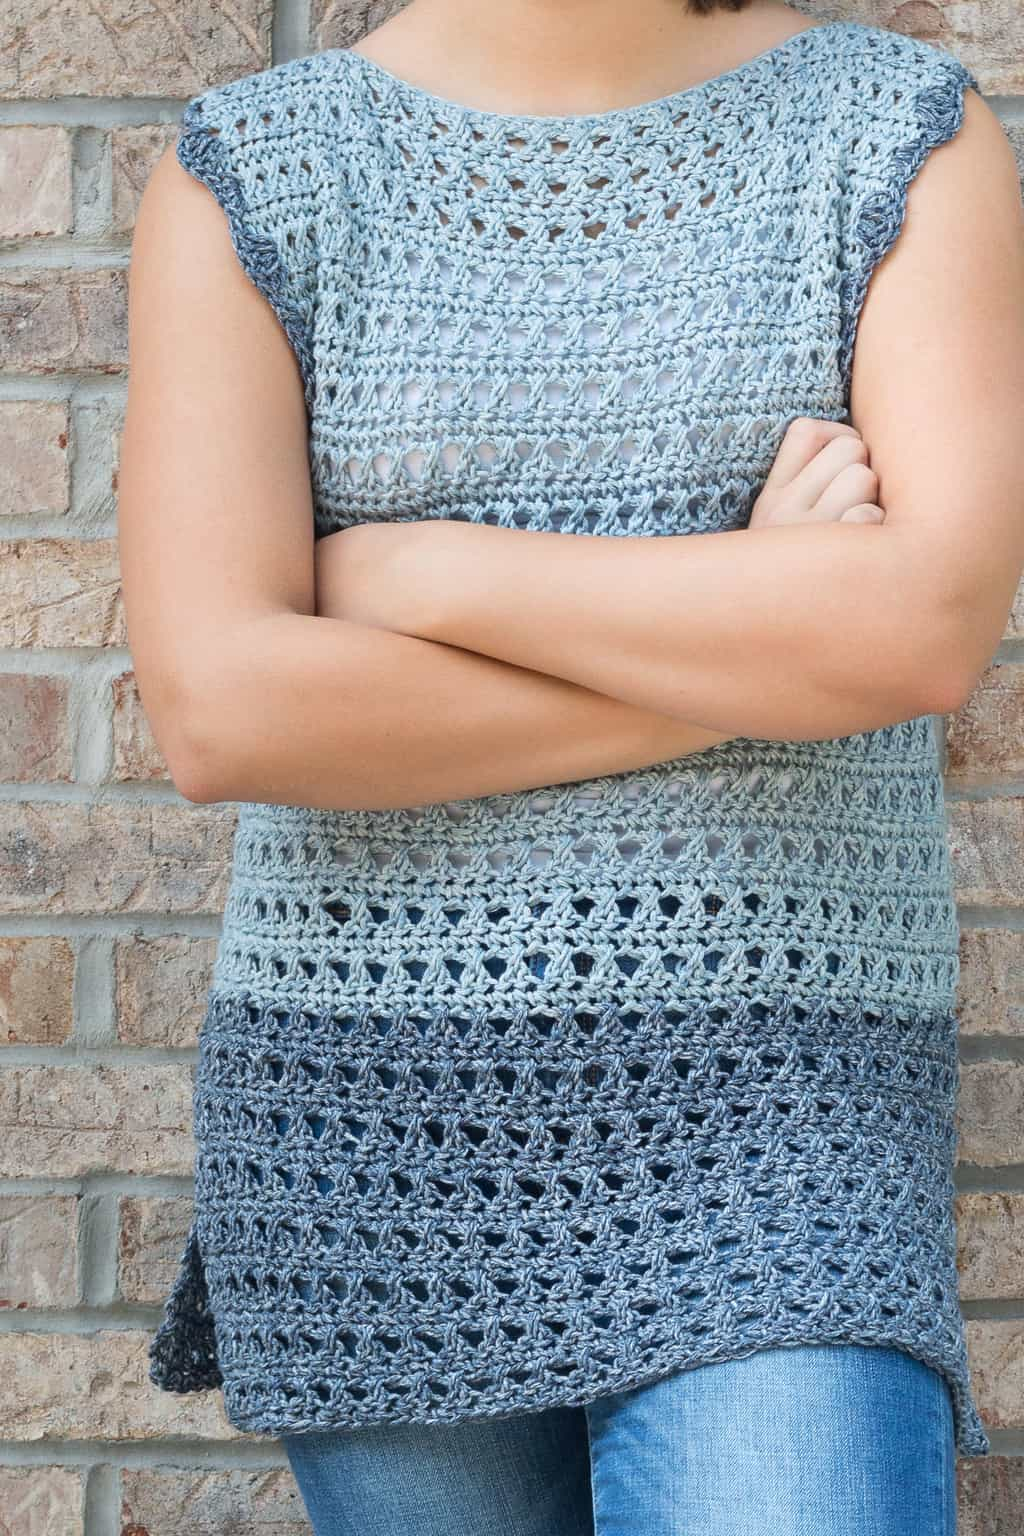 Olivia Crochet Sweater Pattern